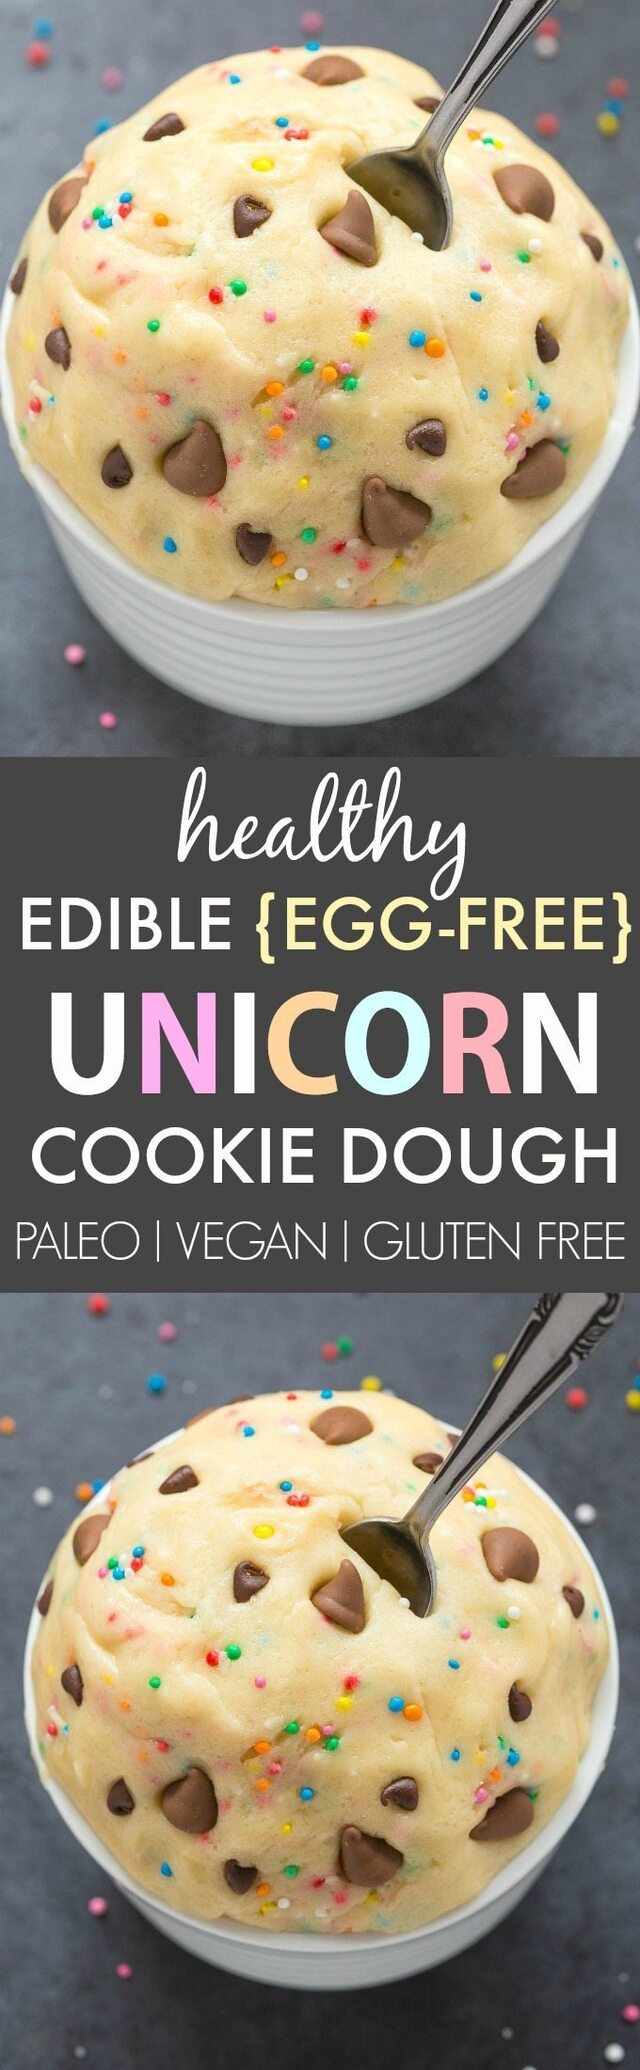 Healthy Edible Egg-Free Unicorn Cookie Dough (Paleo, Vegan, Gluten Free)